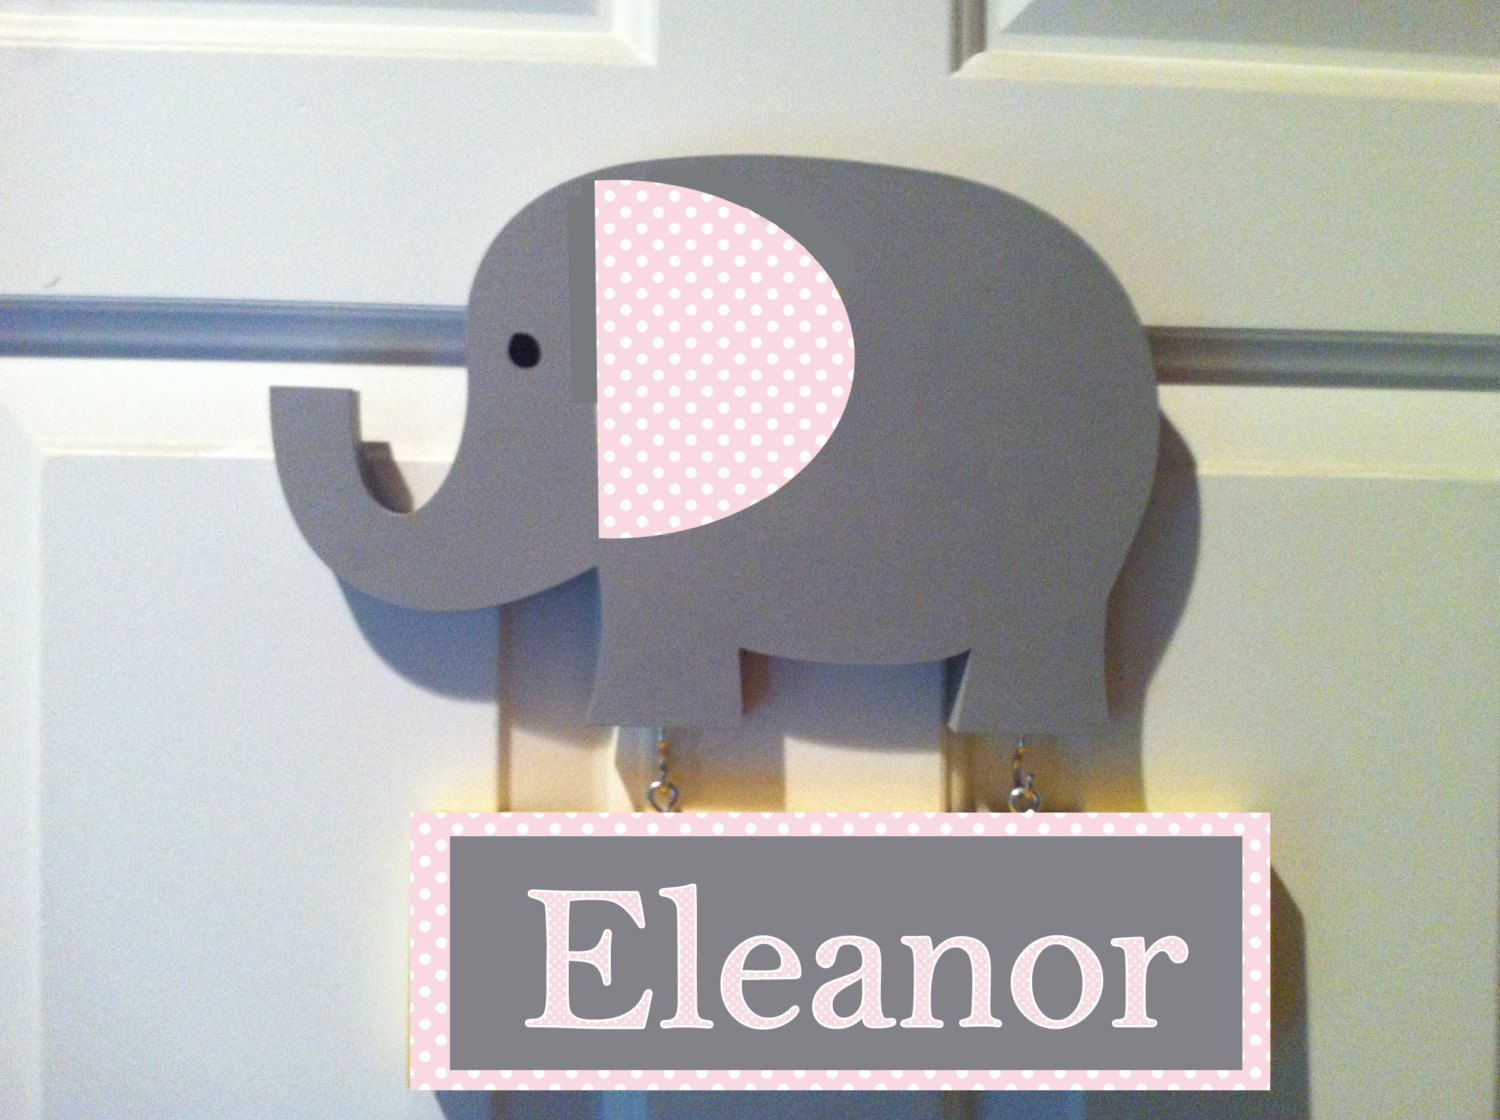 Elephant door sign personalized sign pink and gray elephant ...